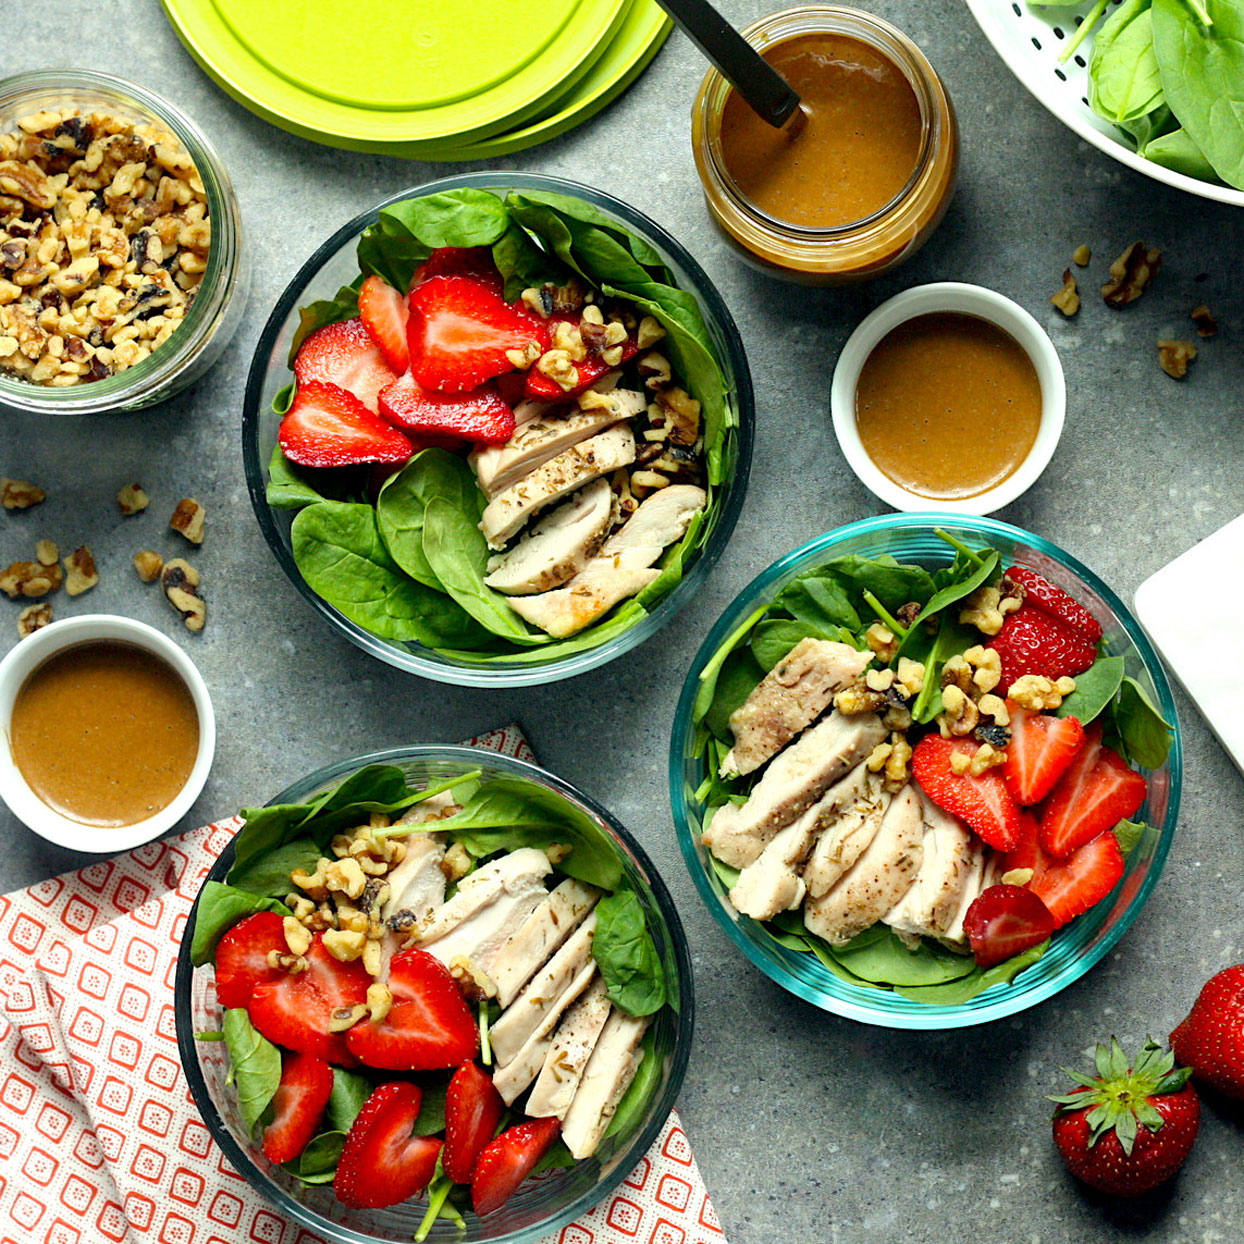 spinach & strawberry meal-prep salad